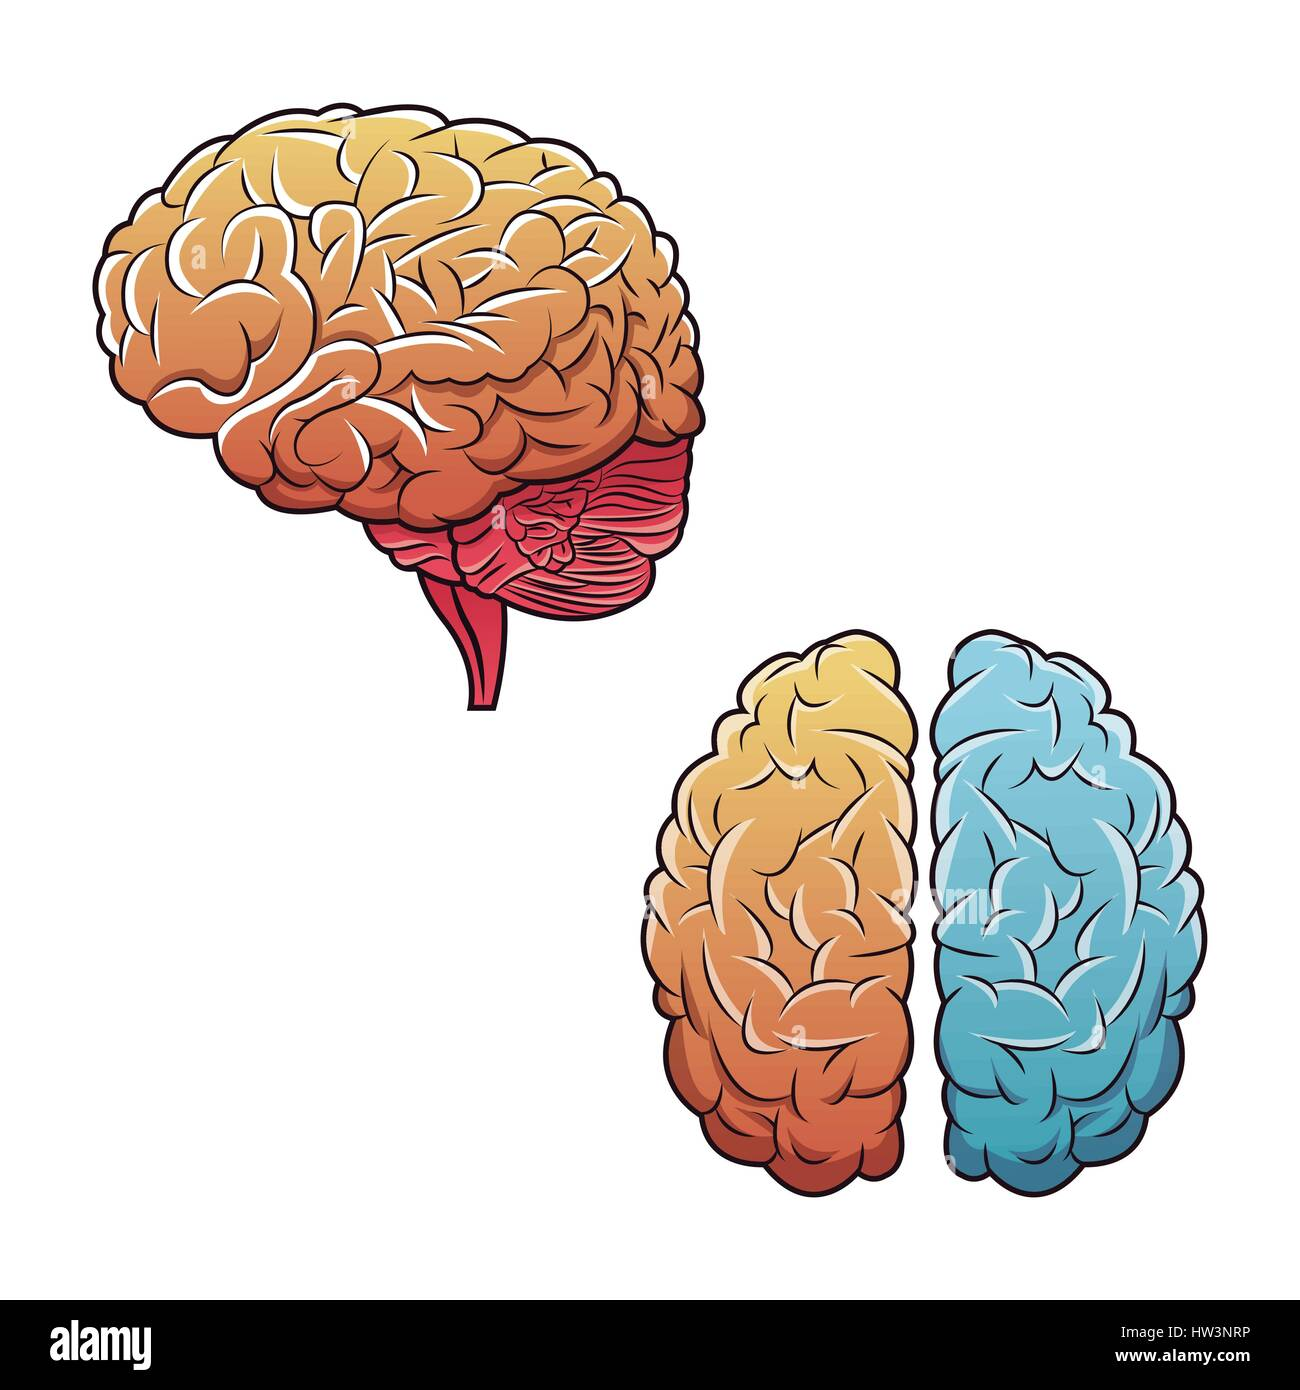 human brains top view and side - Stock Image